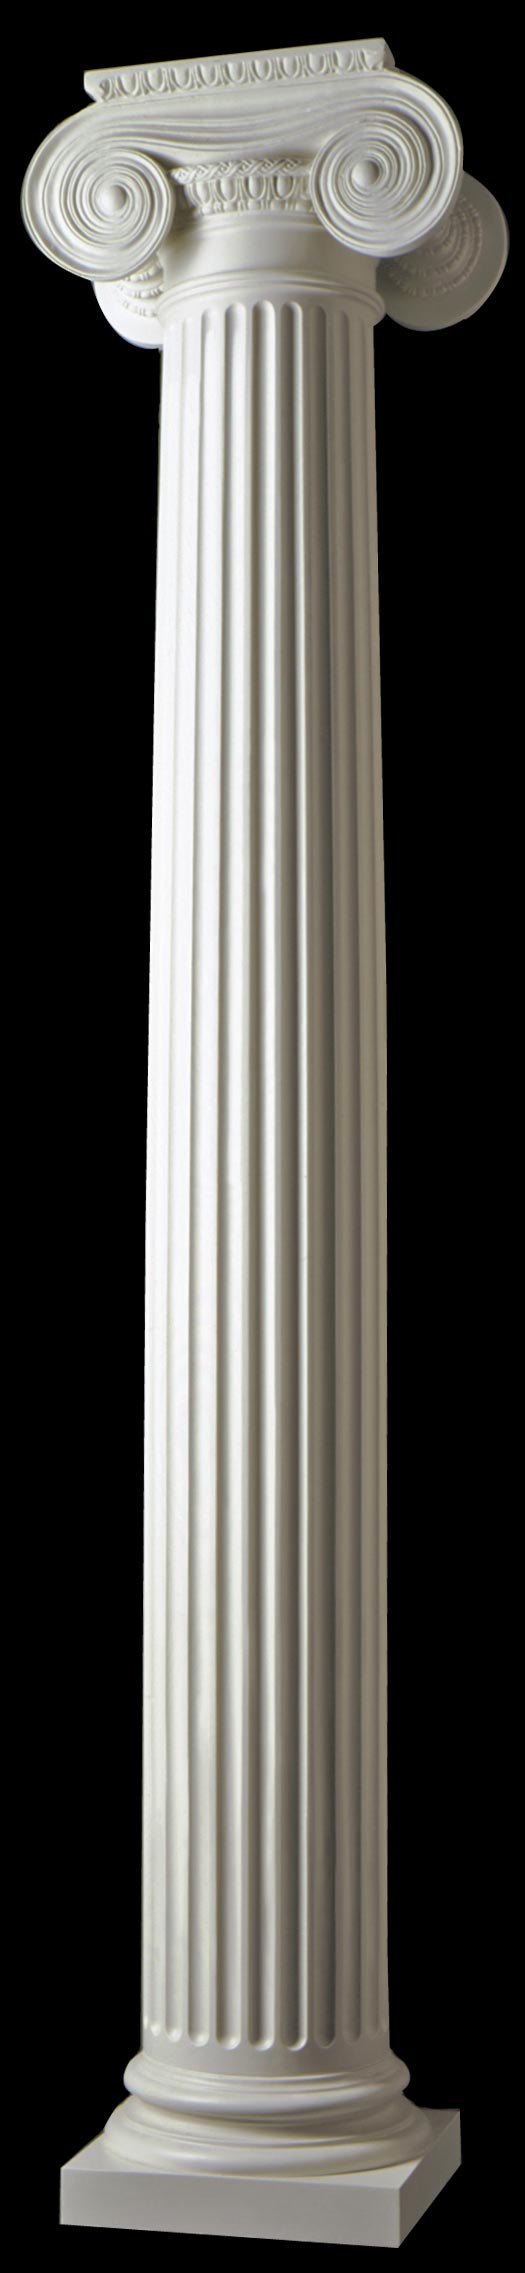 Fluted Tapered Architectural Wood Columns Greek